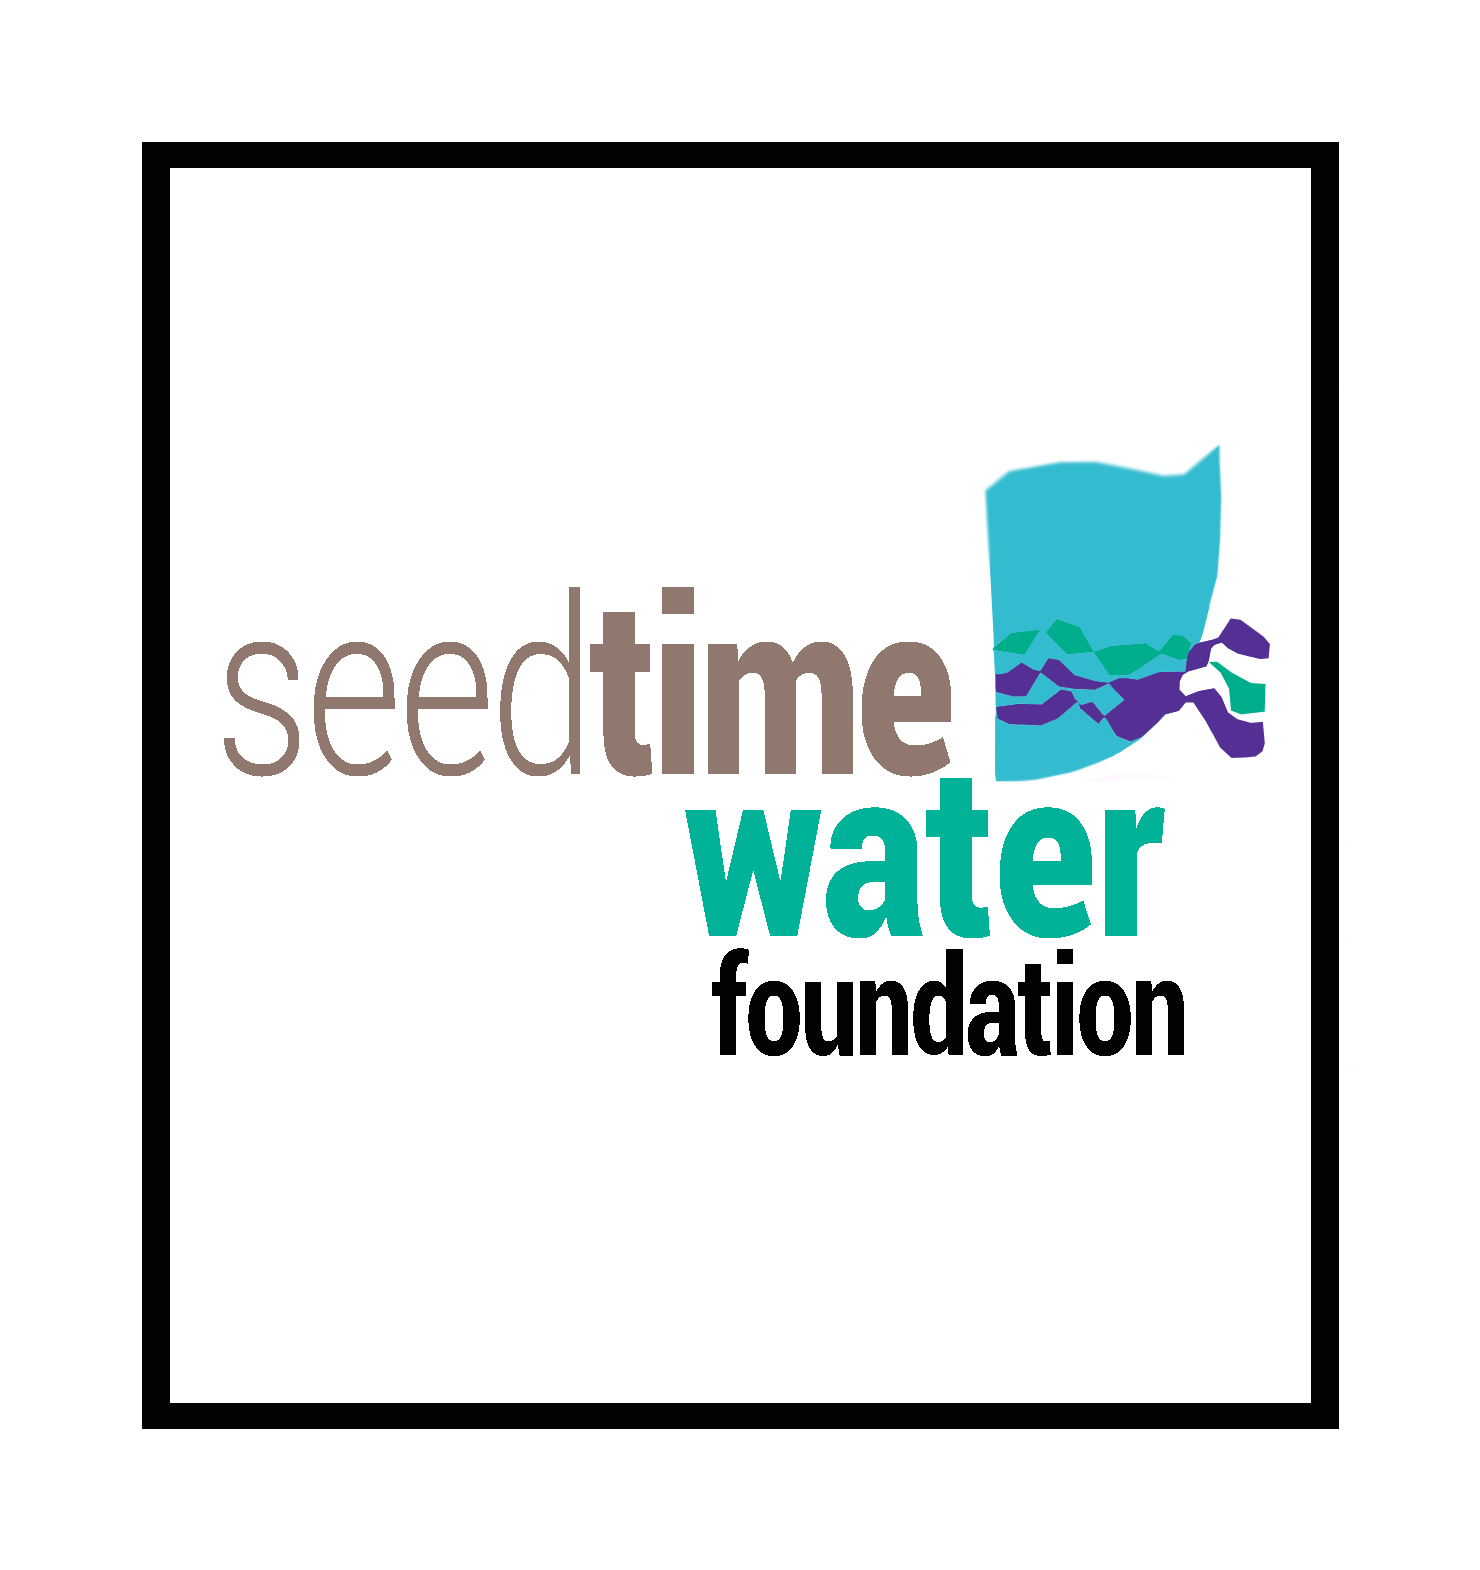 Seedtime Water Foundation  USA-based charity, fundraising support